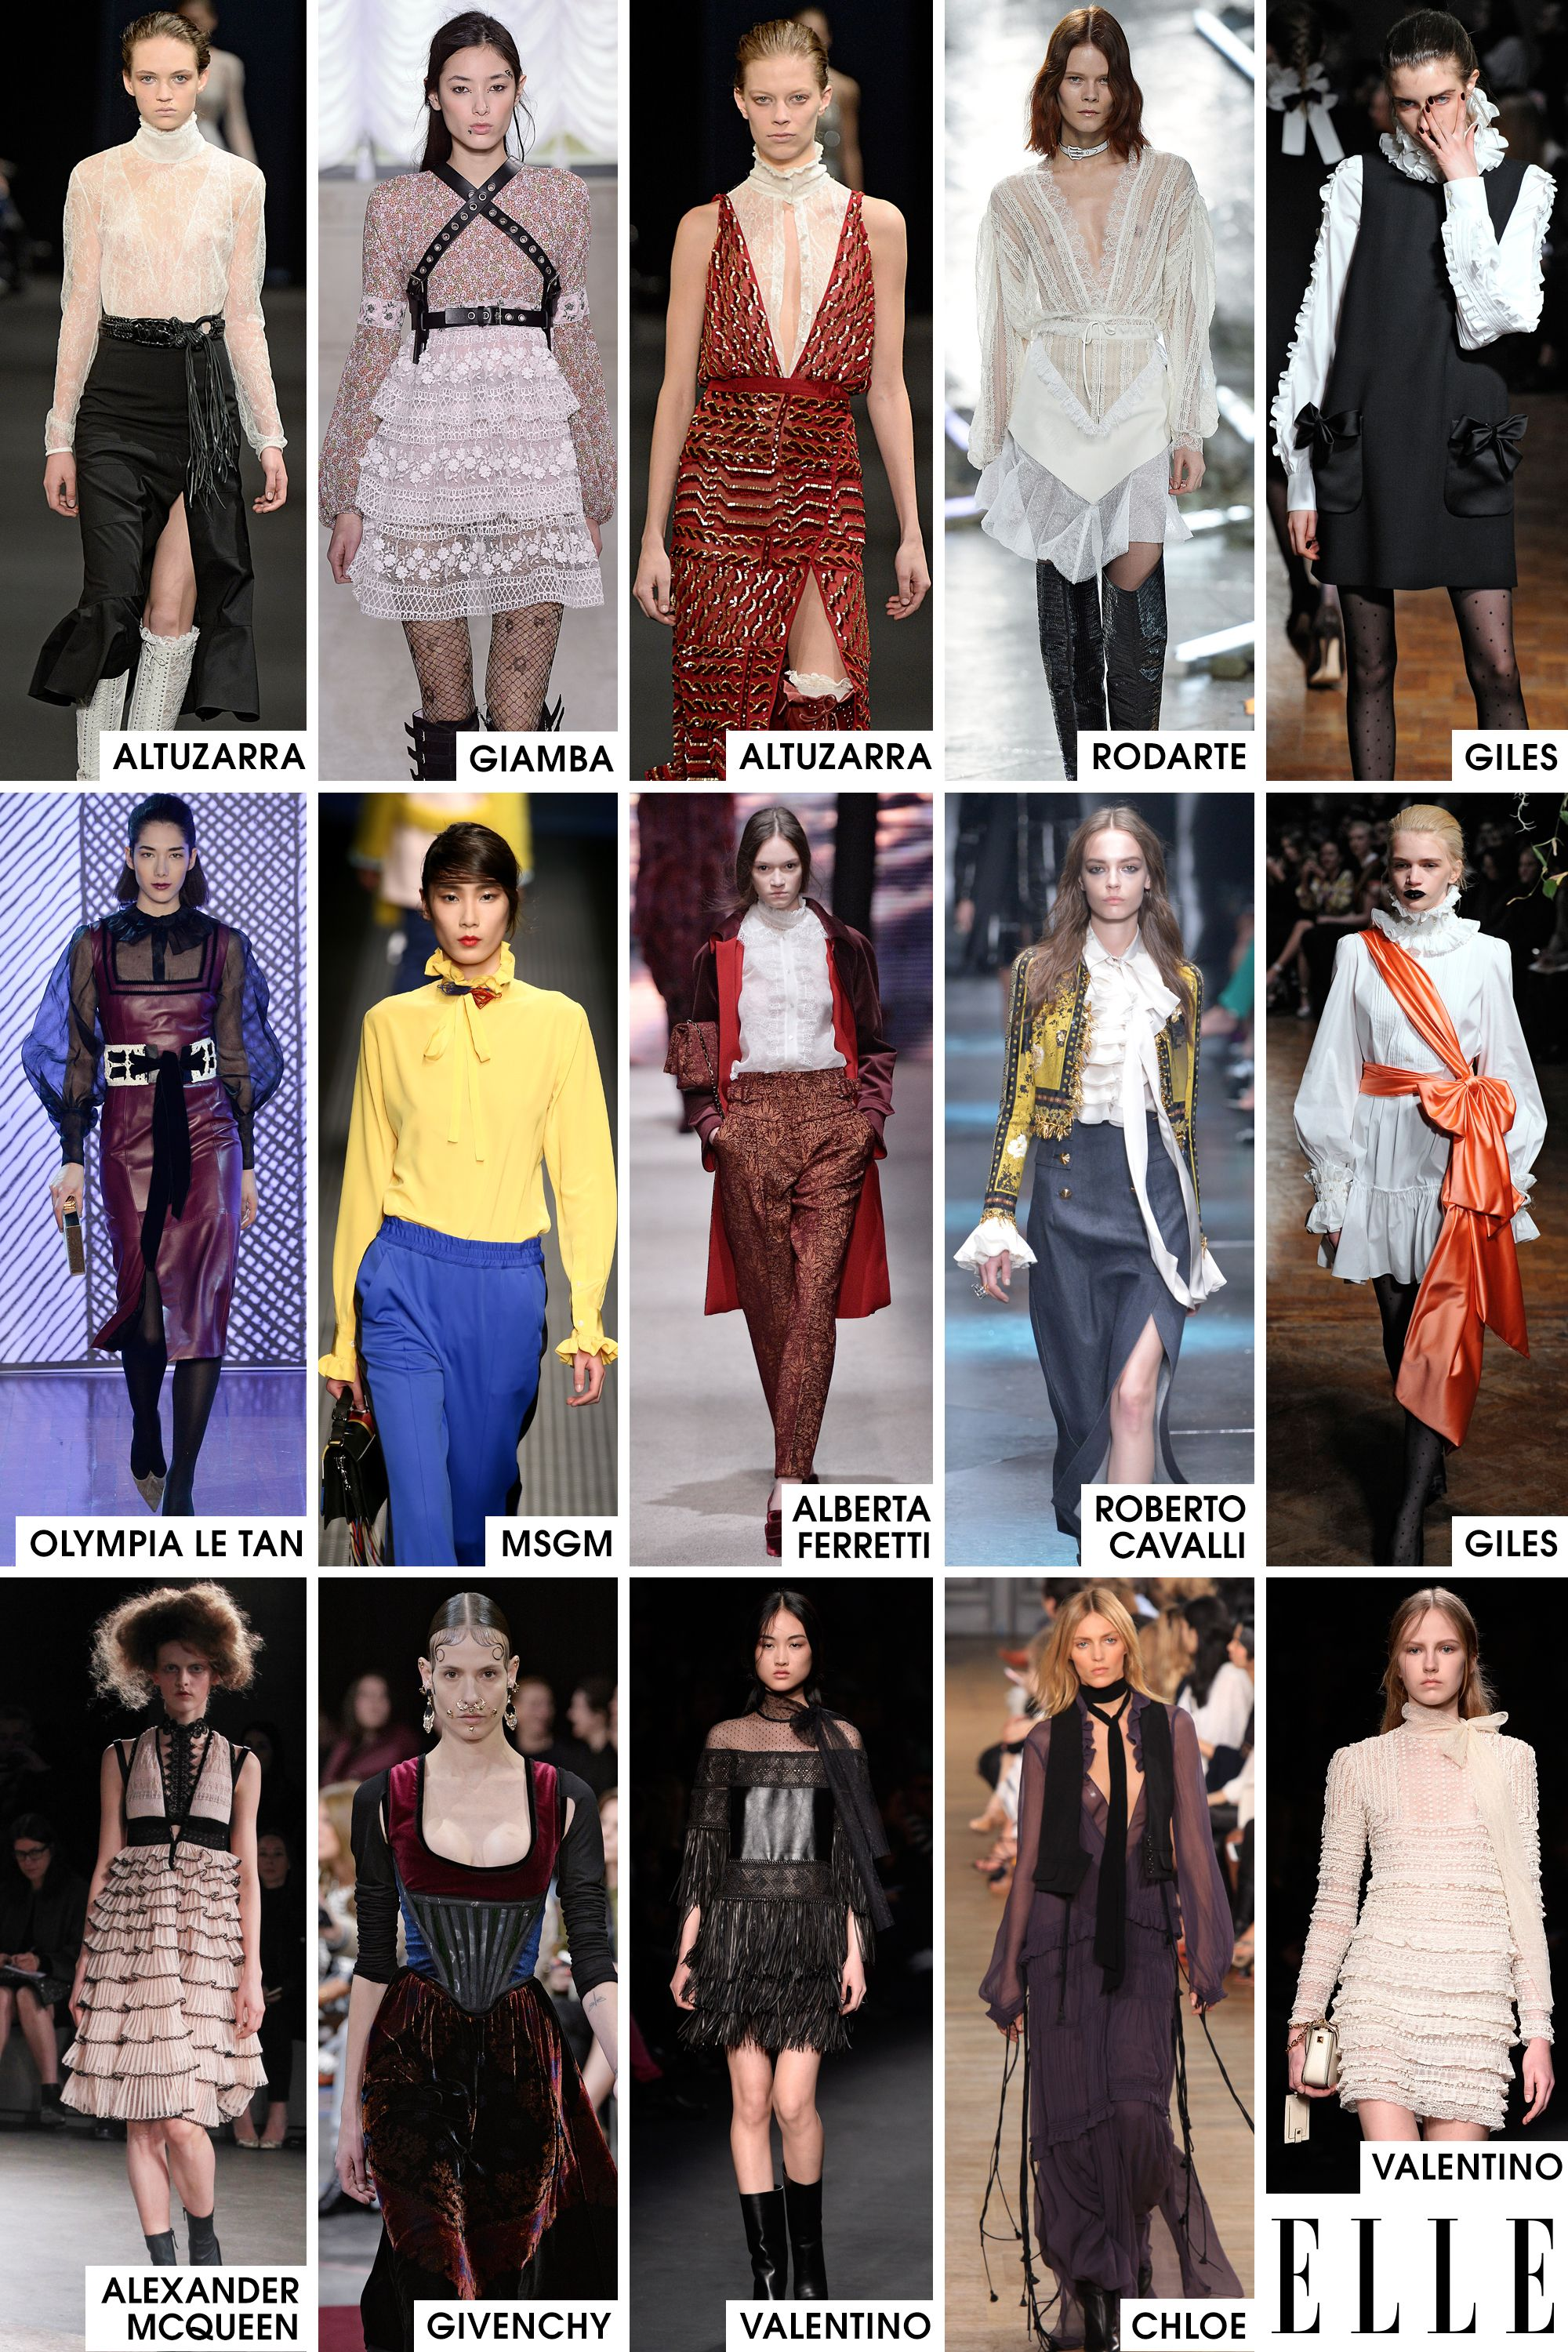 Forget going back decades for inspiration, this season we are going back centuries. Things are feeling positively 19th century on the runways. High collars, ruffles, and lace all made an appearance as a nod to the era but bright colors, leather details, and sexy silhouettes subverted the traditionally buttoned-up look with some modern flair.   - ELLE.com